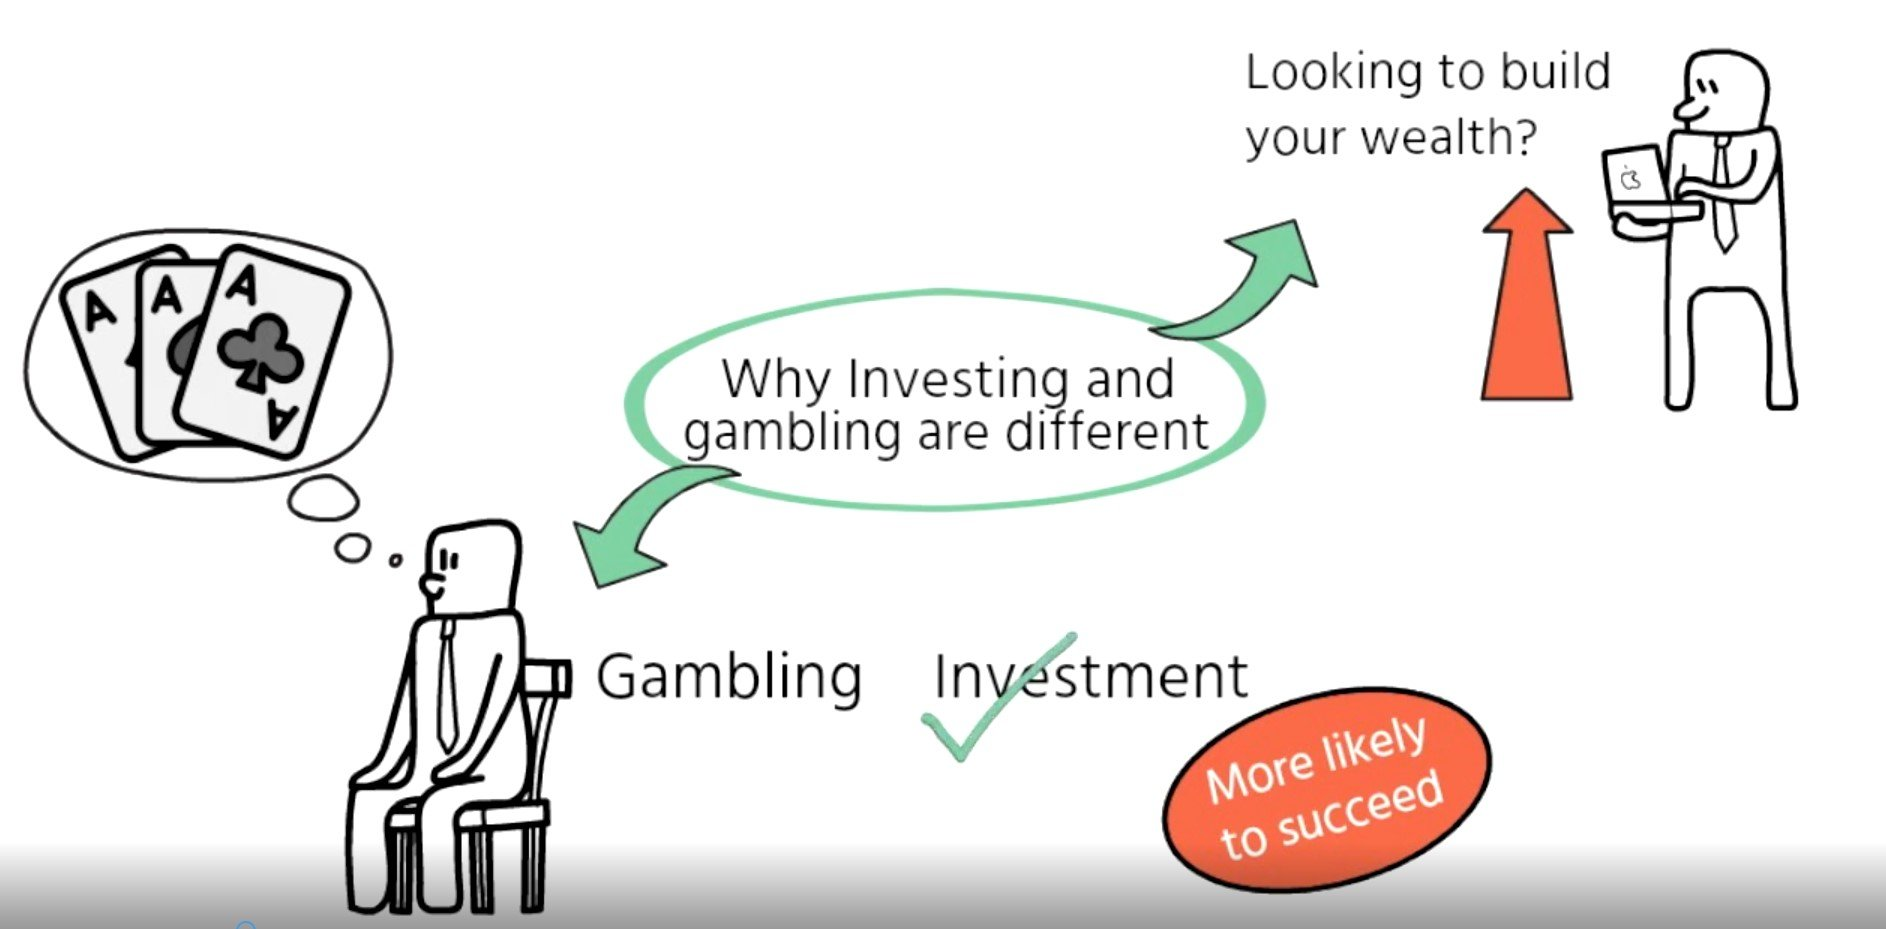 Why investing and gambling are different